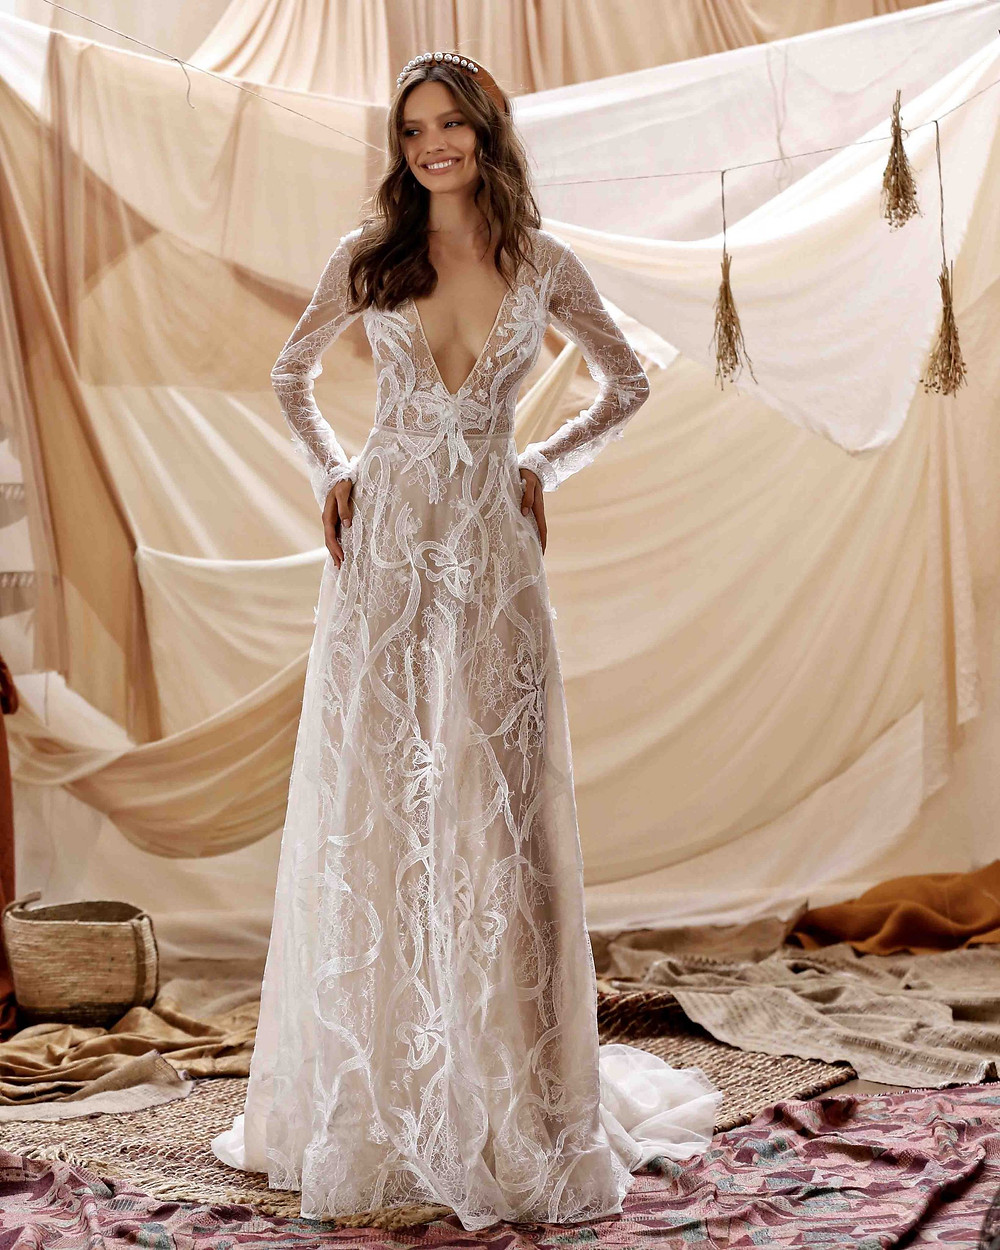 A A Berta 2021 long sleeve, low V, A-line Wedding dress, with embroidery